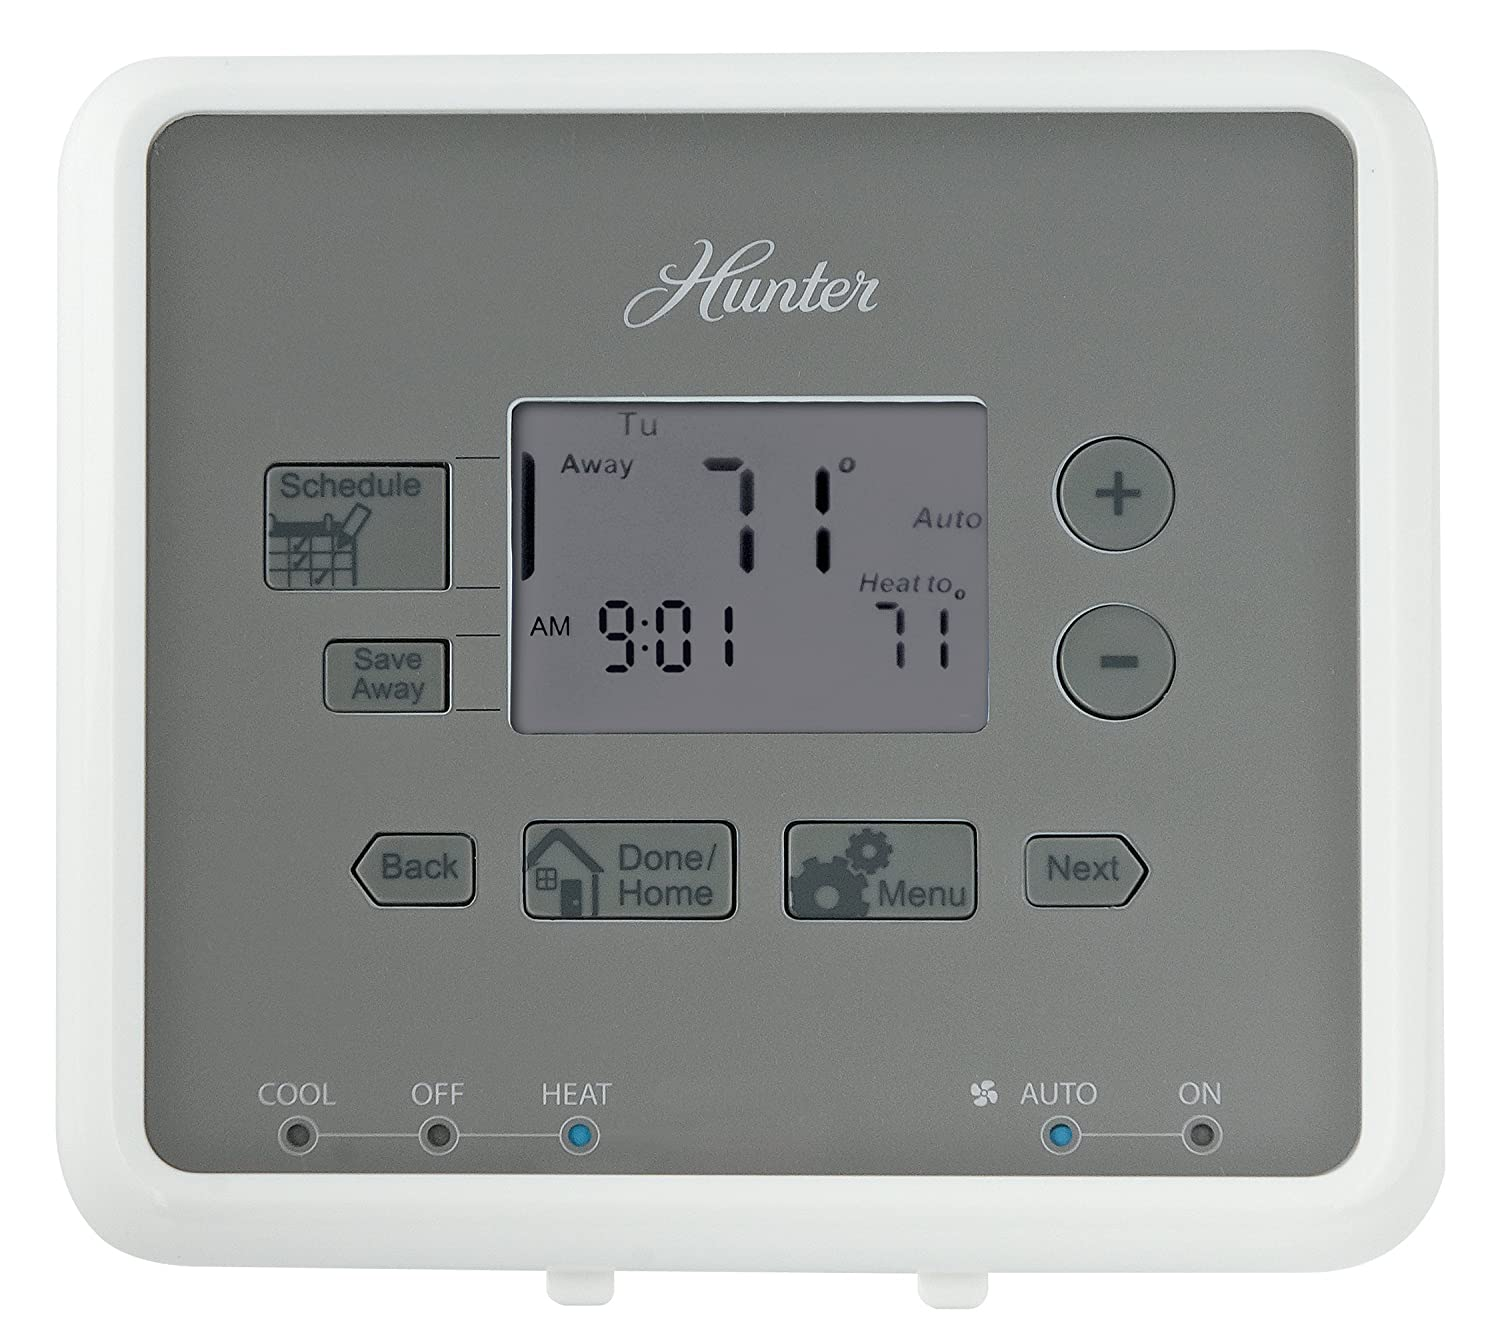 91%2BVhyIRNrL._SL1500_ hunter 44132 5 minute 5 2 day programmable thermostat, white hunter thermostat 44260 wiring diagram at love-stories.co